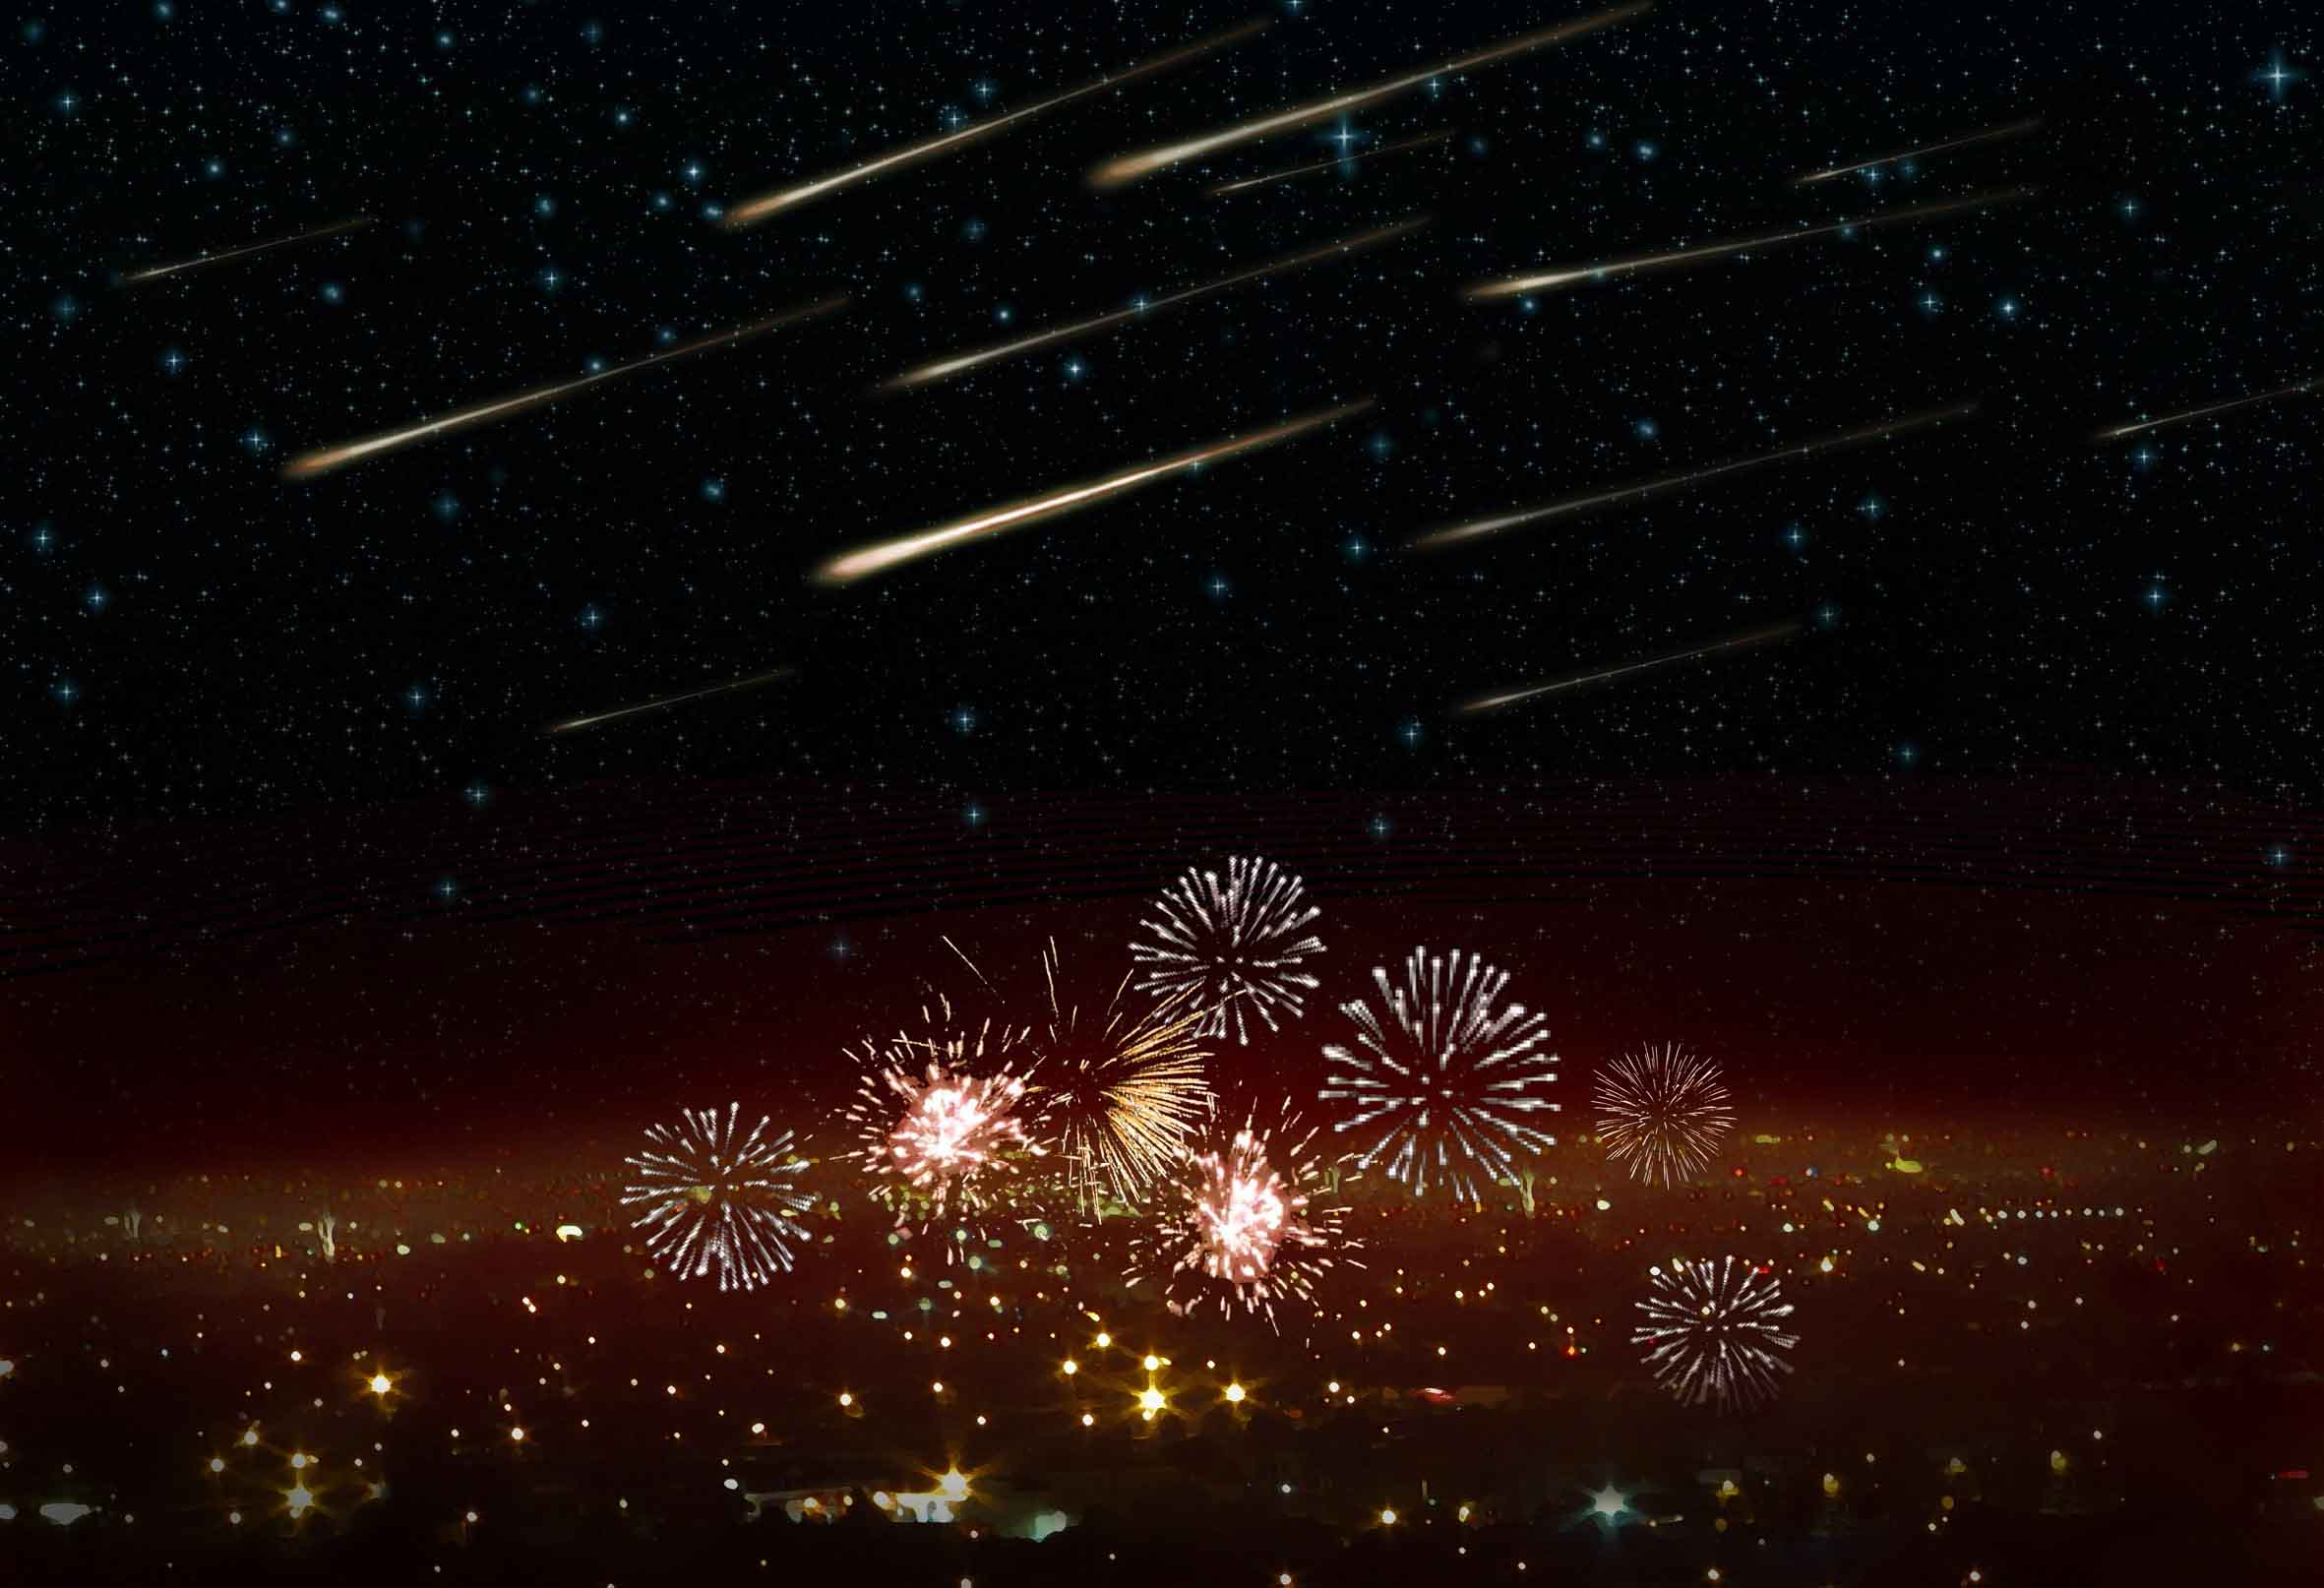 Meteor Falling Wallpaper A Beautiful Meteor Shower Could Be Evidence Of A Dangerous